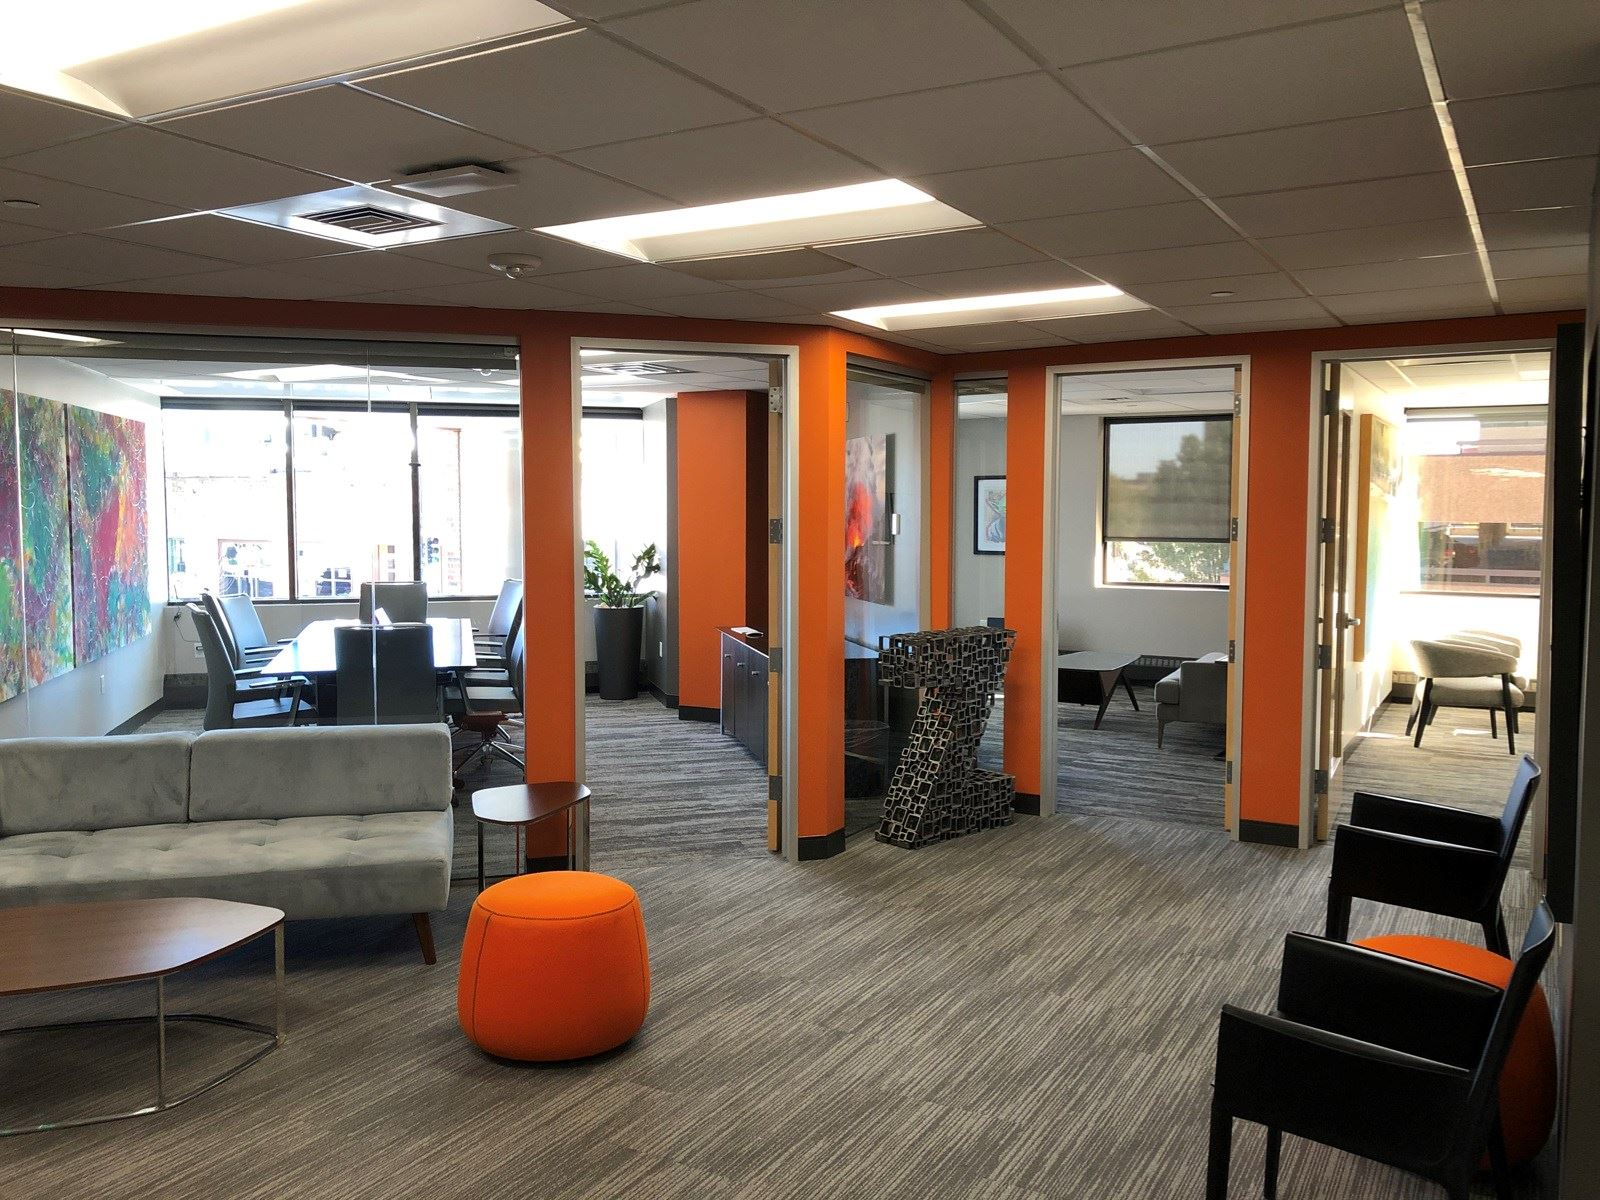 Next Frontier Brands is supporting its rapid growth by moving to a larger, technology-enabled office facility.